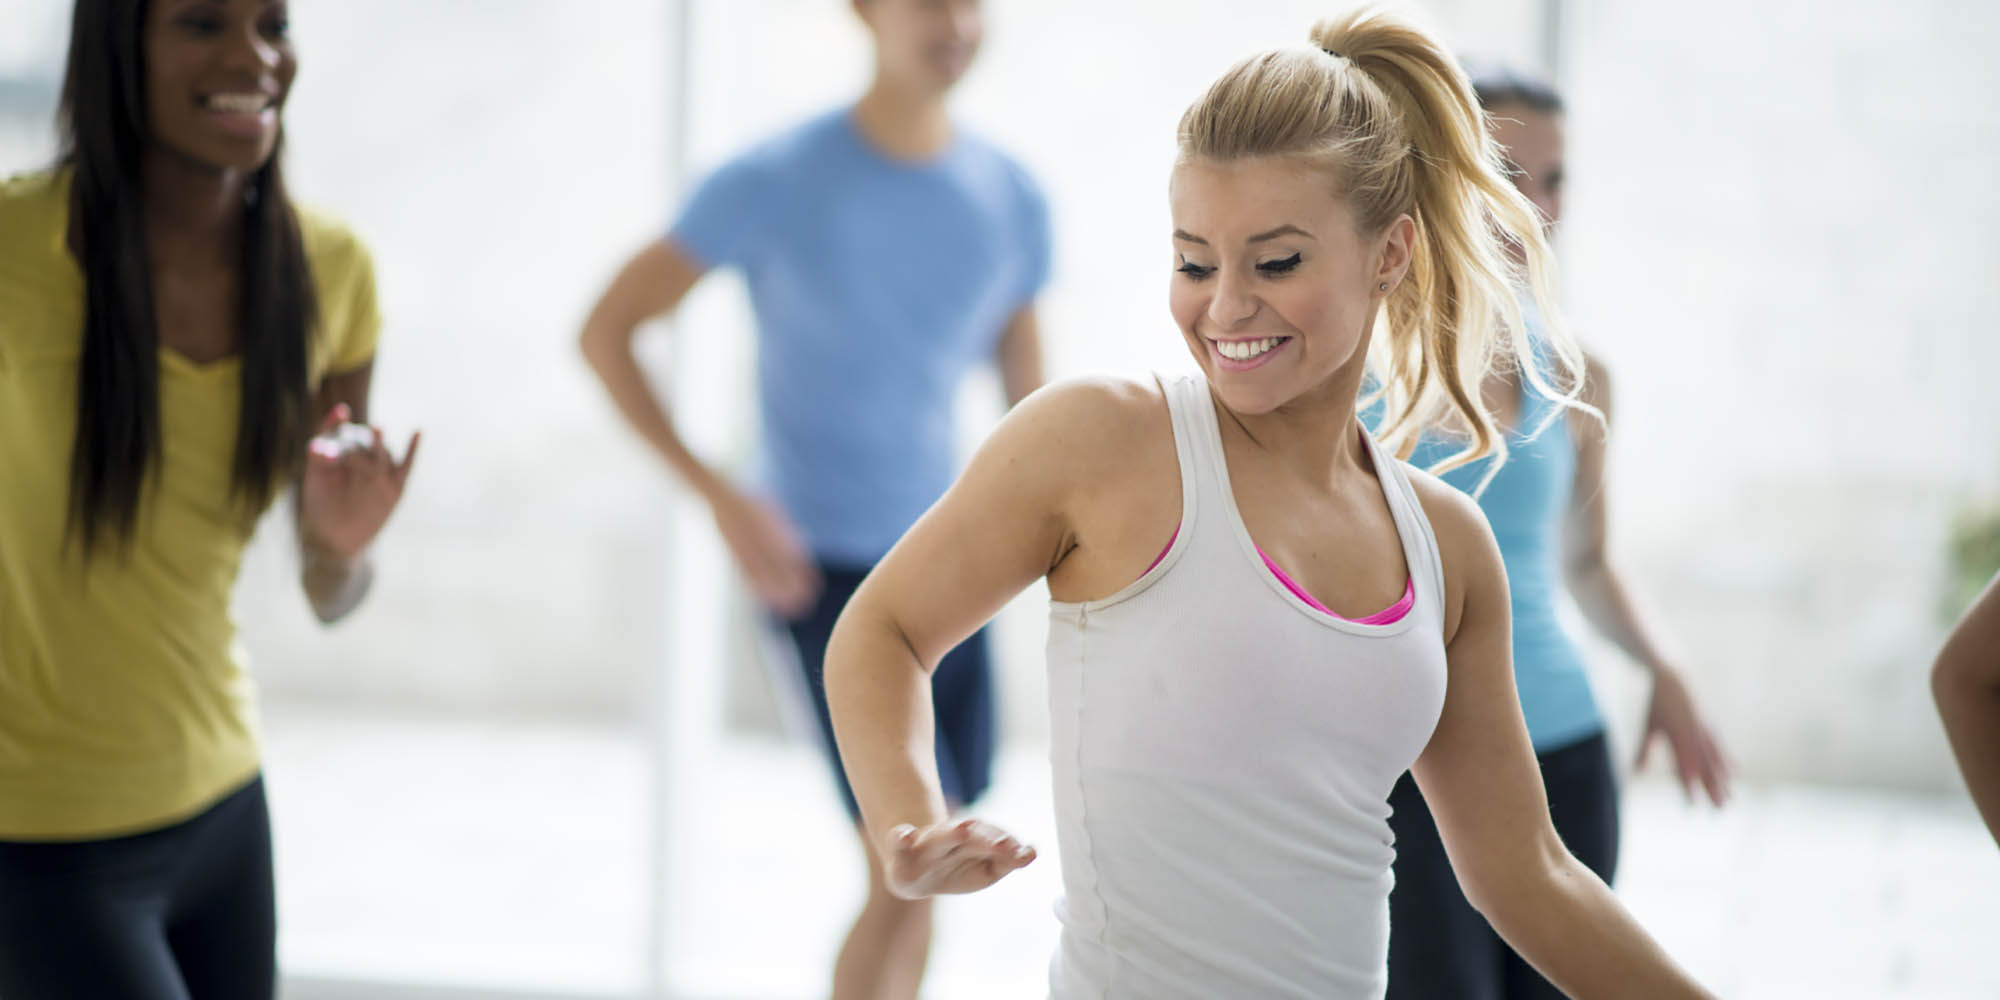 10 Ways to Work Dance Into Your Workouts